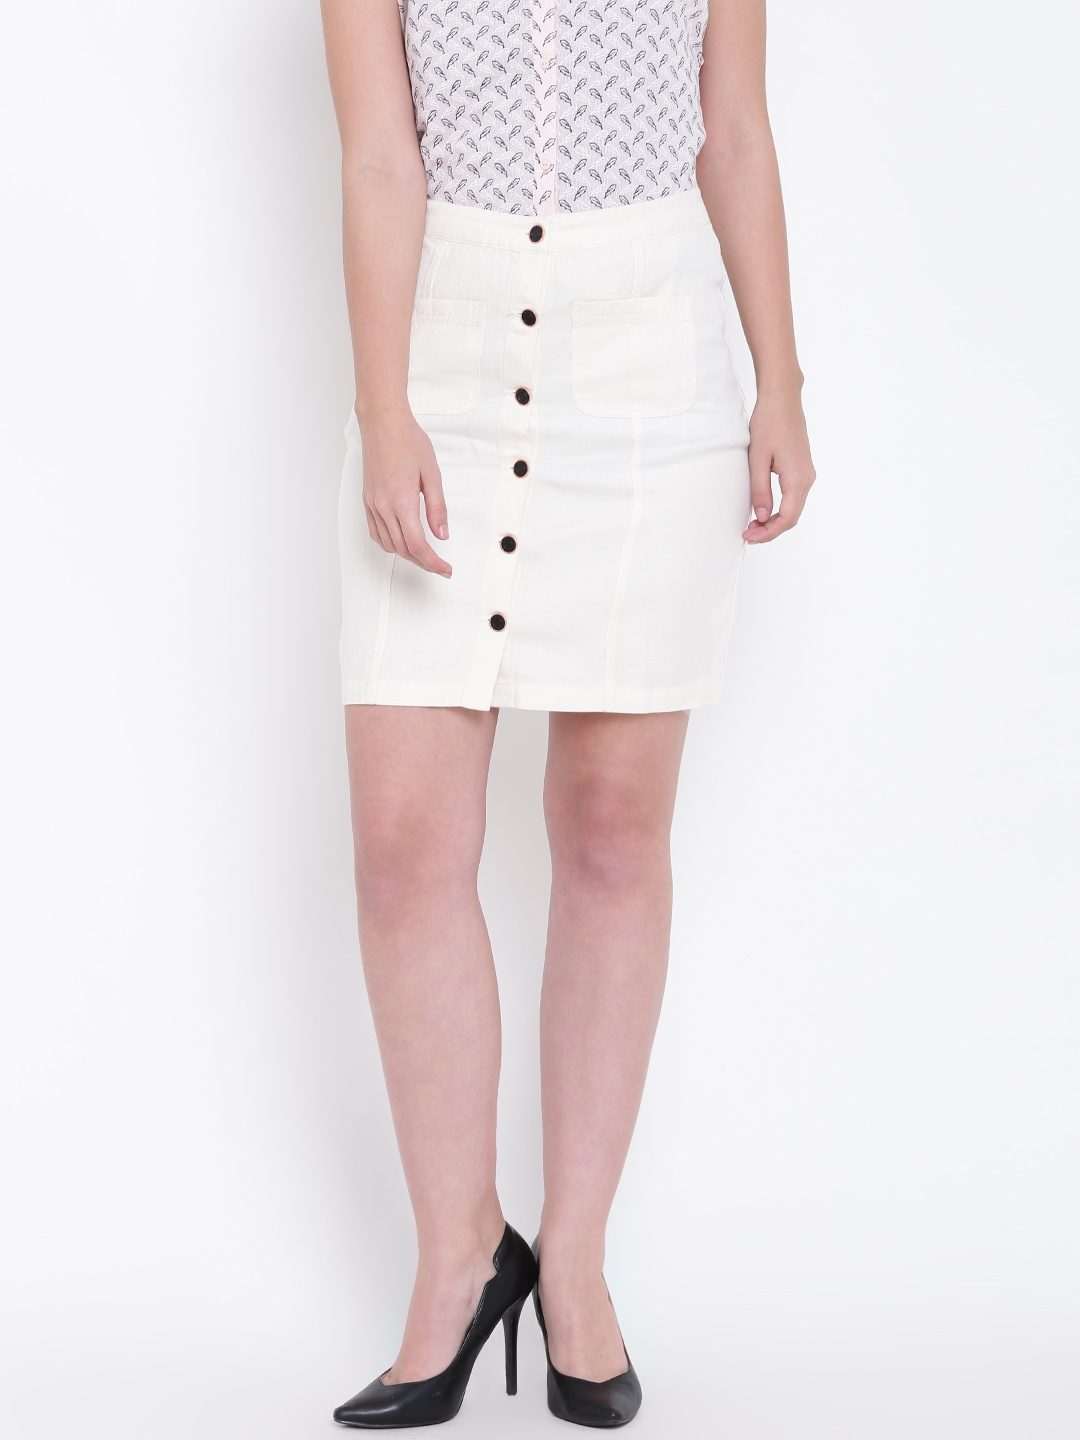 9159b3d7b Buy Madame Off White Pencil Skirt - Skirts for Women 2495225 | Myntra